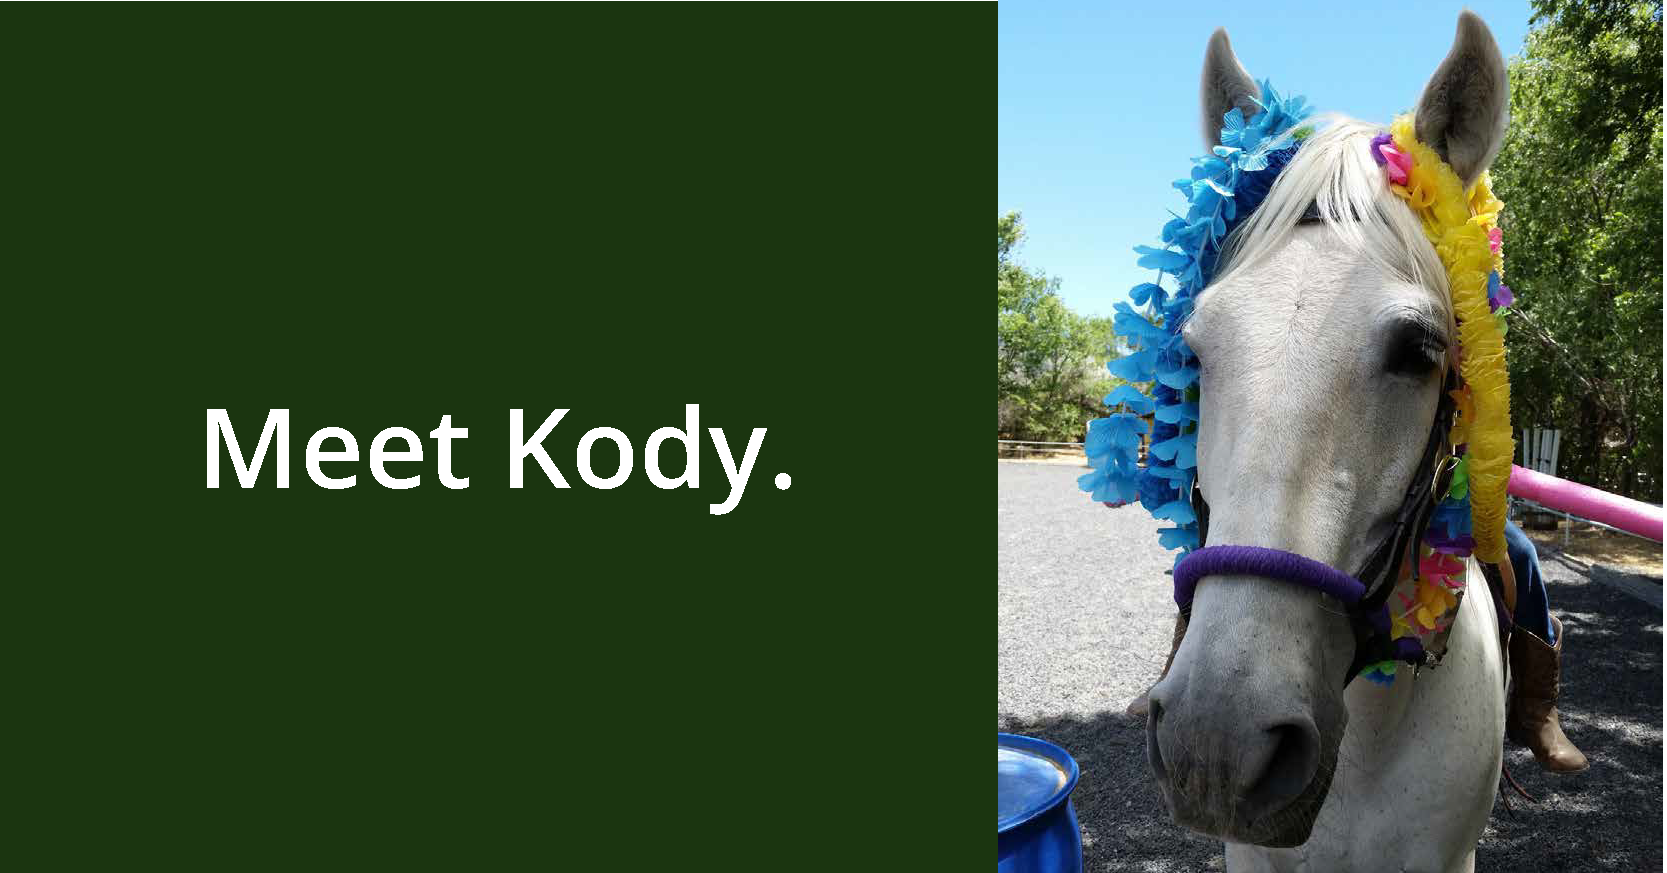 Meet Kody GIF_Page_1.png